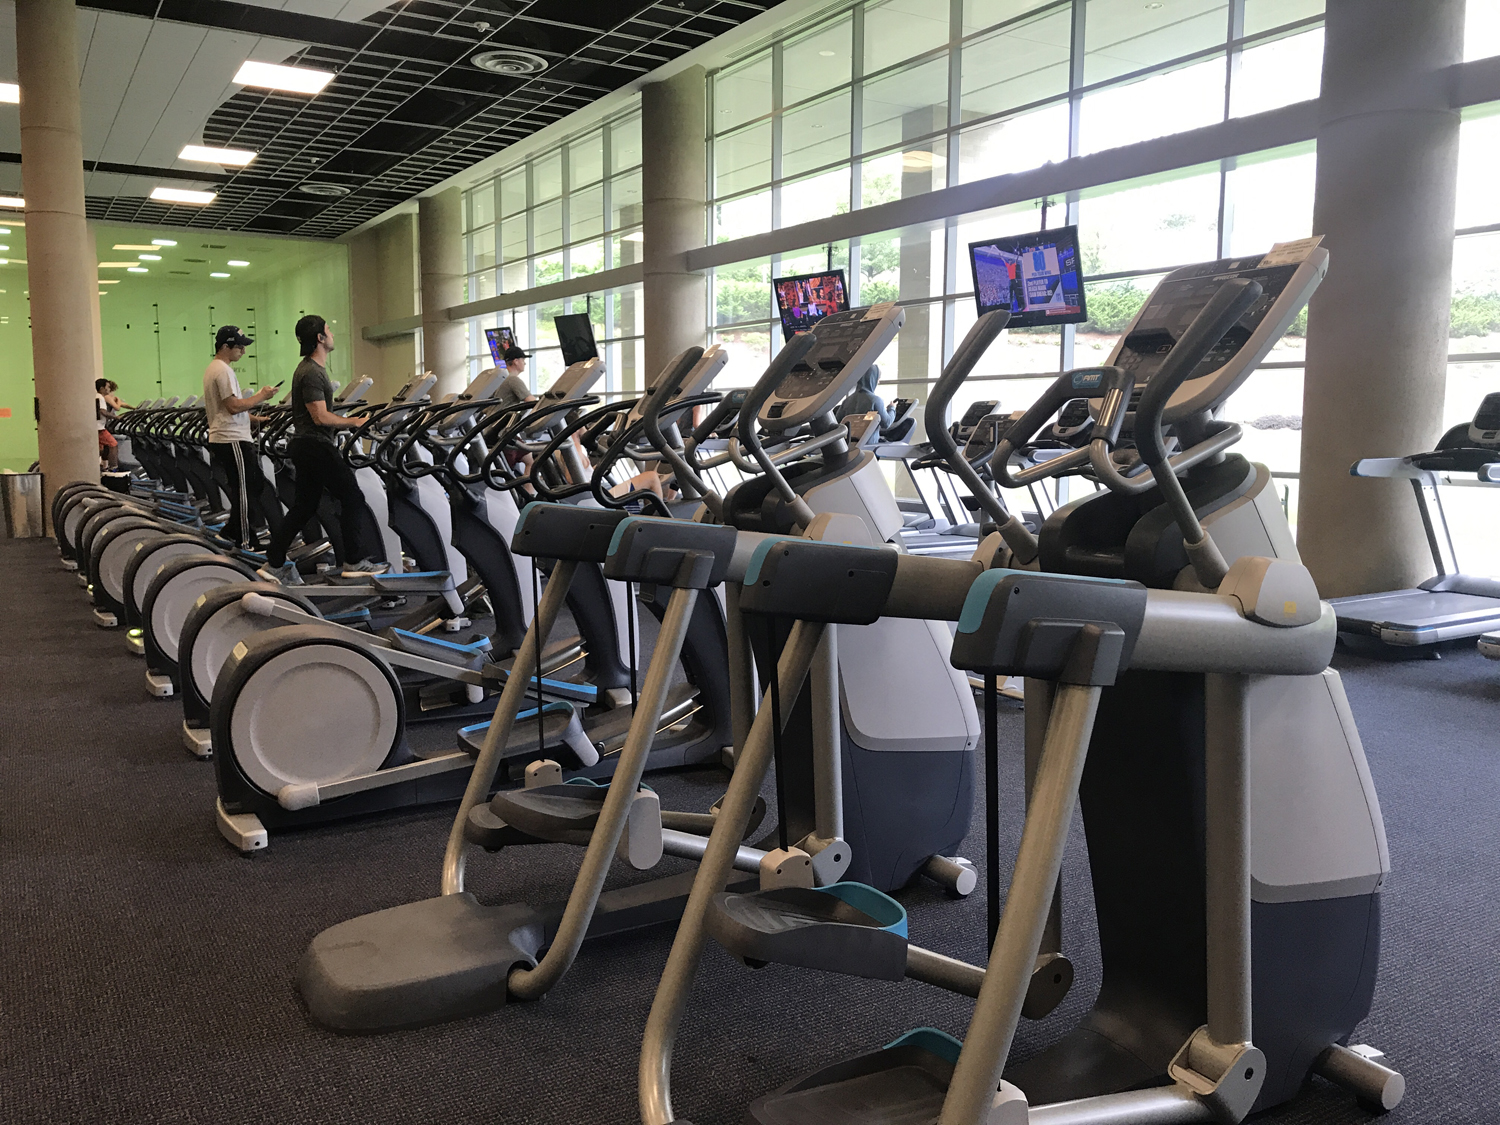 The Baierl Student Recreation Center in the Petersen Events Center is a popular workout location for students.